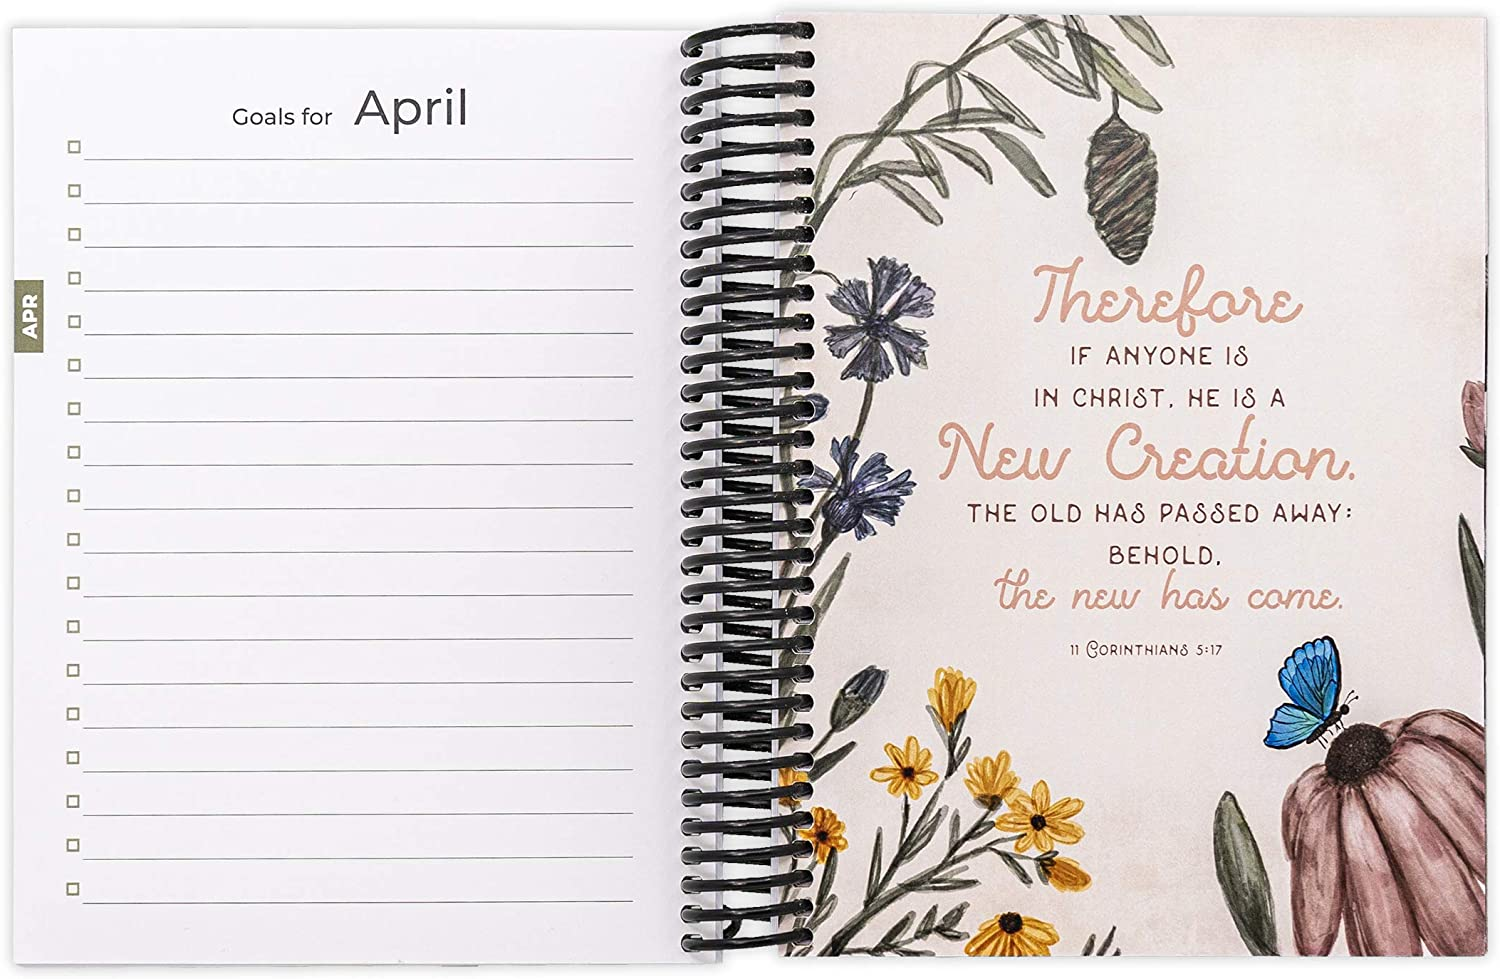 ultimate weekly planner studio 331 goals for april 2021